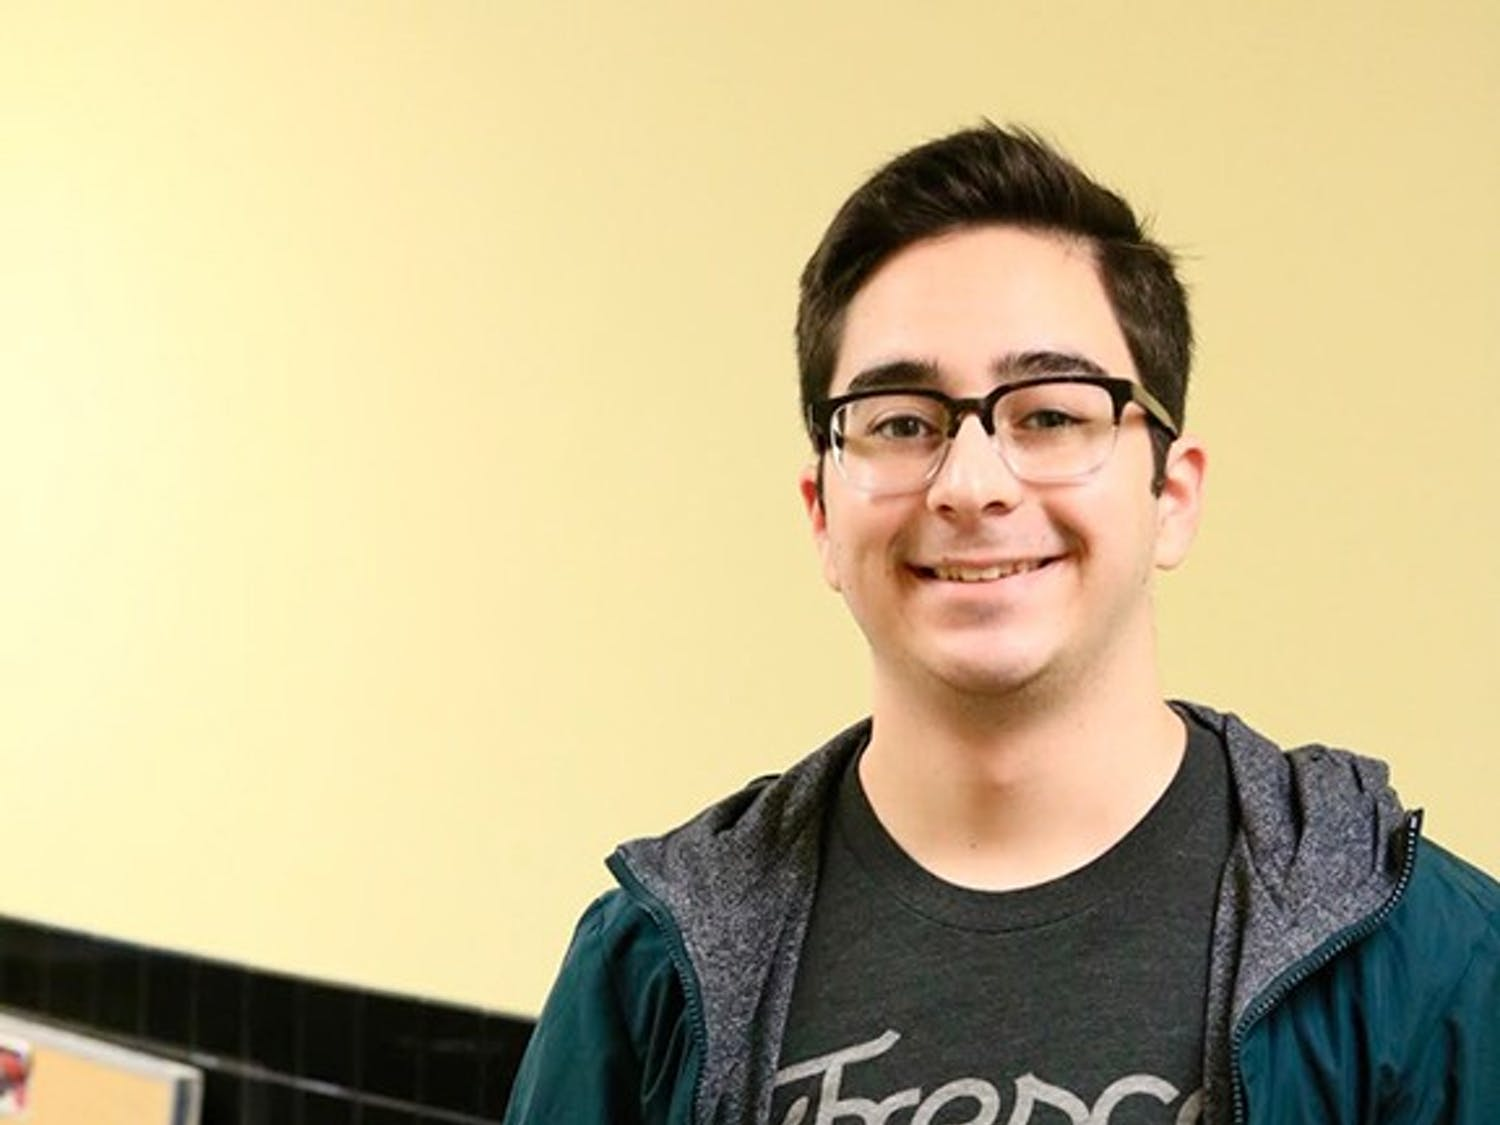 Arthur De Araujo, sophomore computer science major, poses next to the icon for his Lecture Buddy app. The app translates a lecture into text and highlights important keywords.